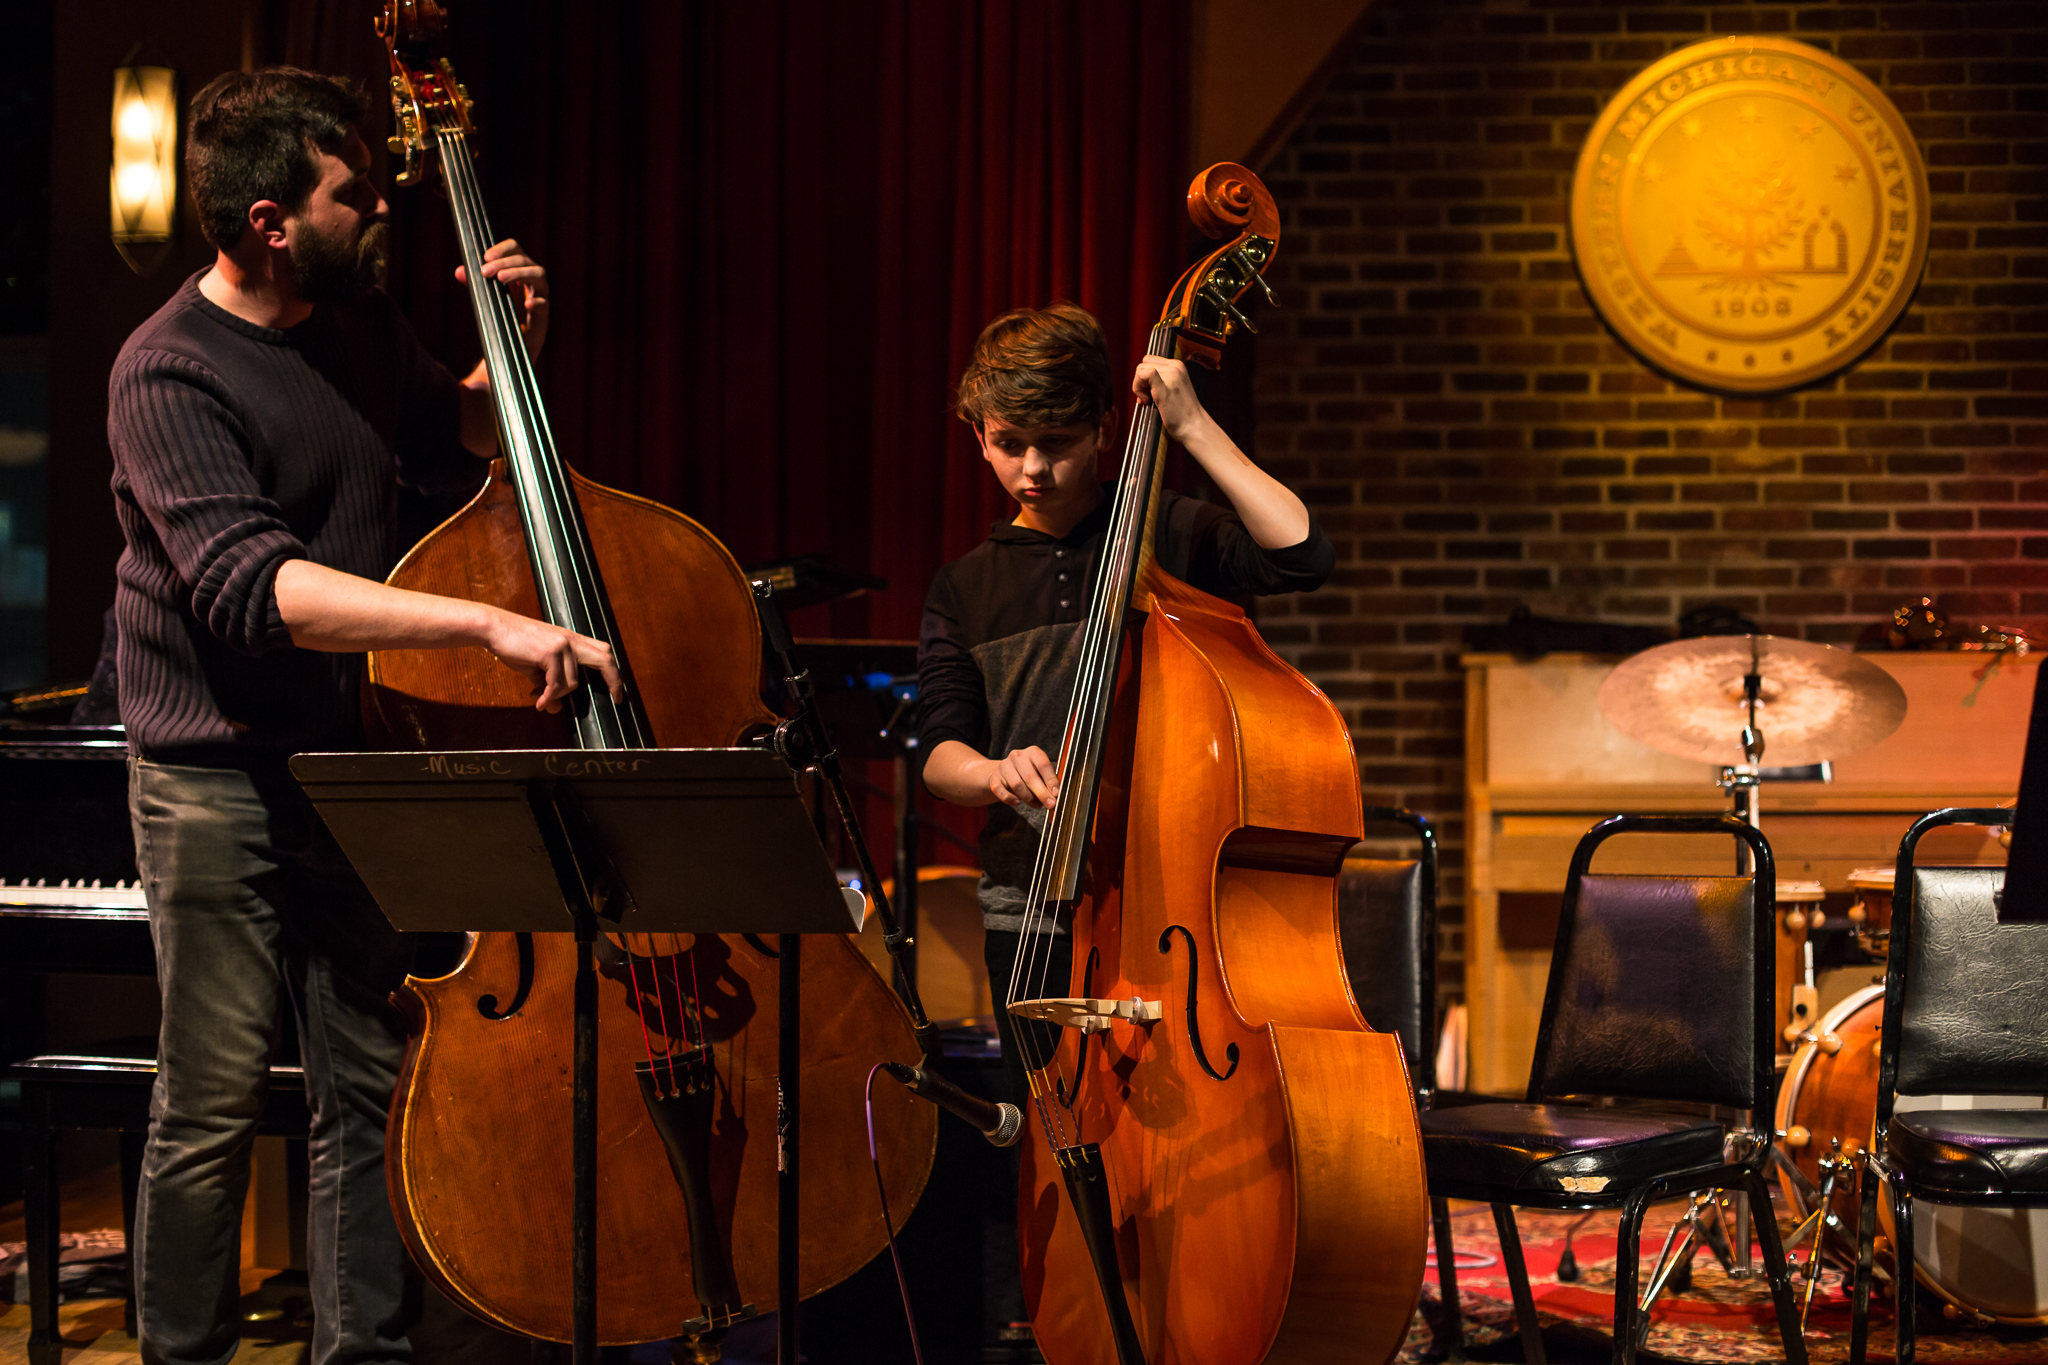 Bass faculty Andrew Peck joins his student on stage at the Union Cabaret and Grille for a duo performance in February 2019.